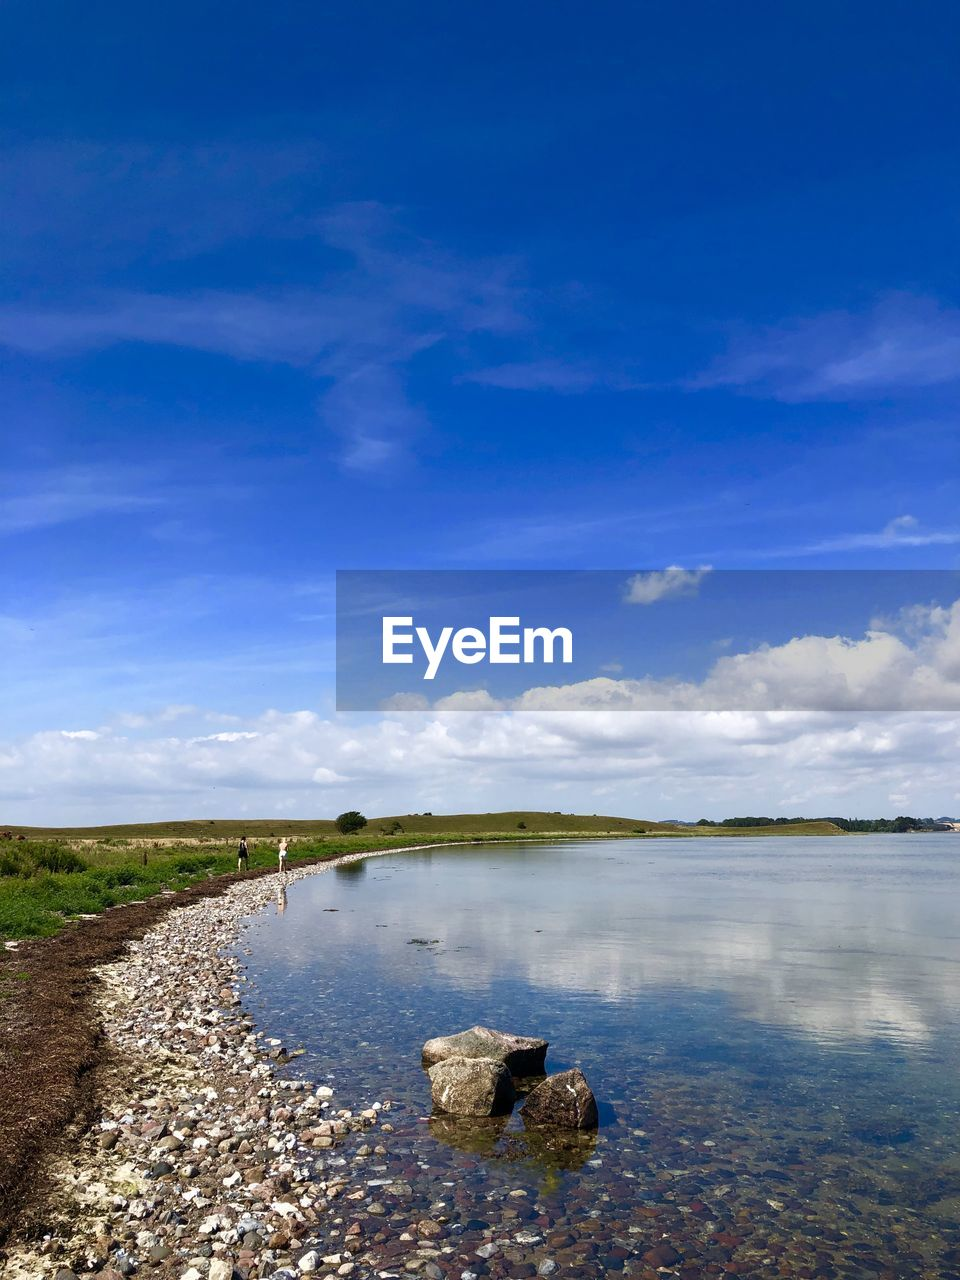 sky, water, cloud - sky, scenics - nature, tranquility, tranquil scene, nature, blue, lake, day, beauty in nature, no people, non-urban scene, animal, solid, animal themes, one animal, outdoors, land